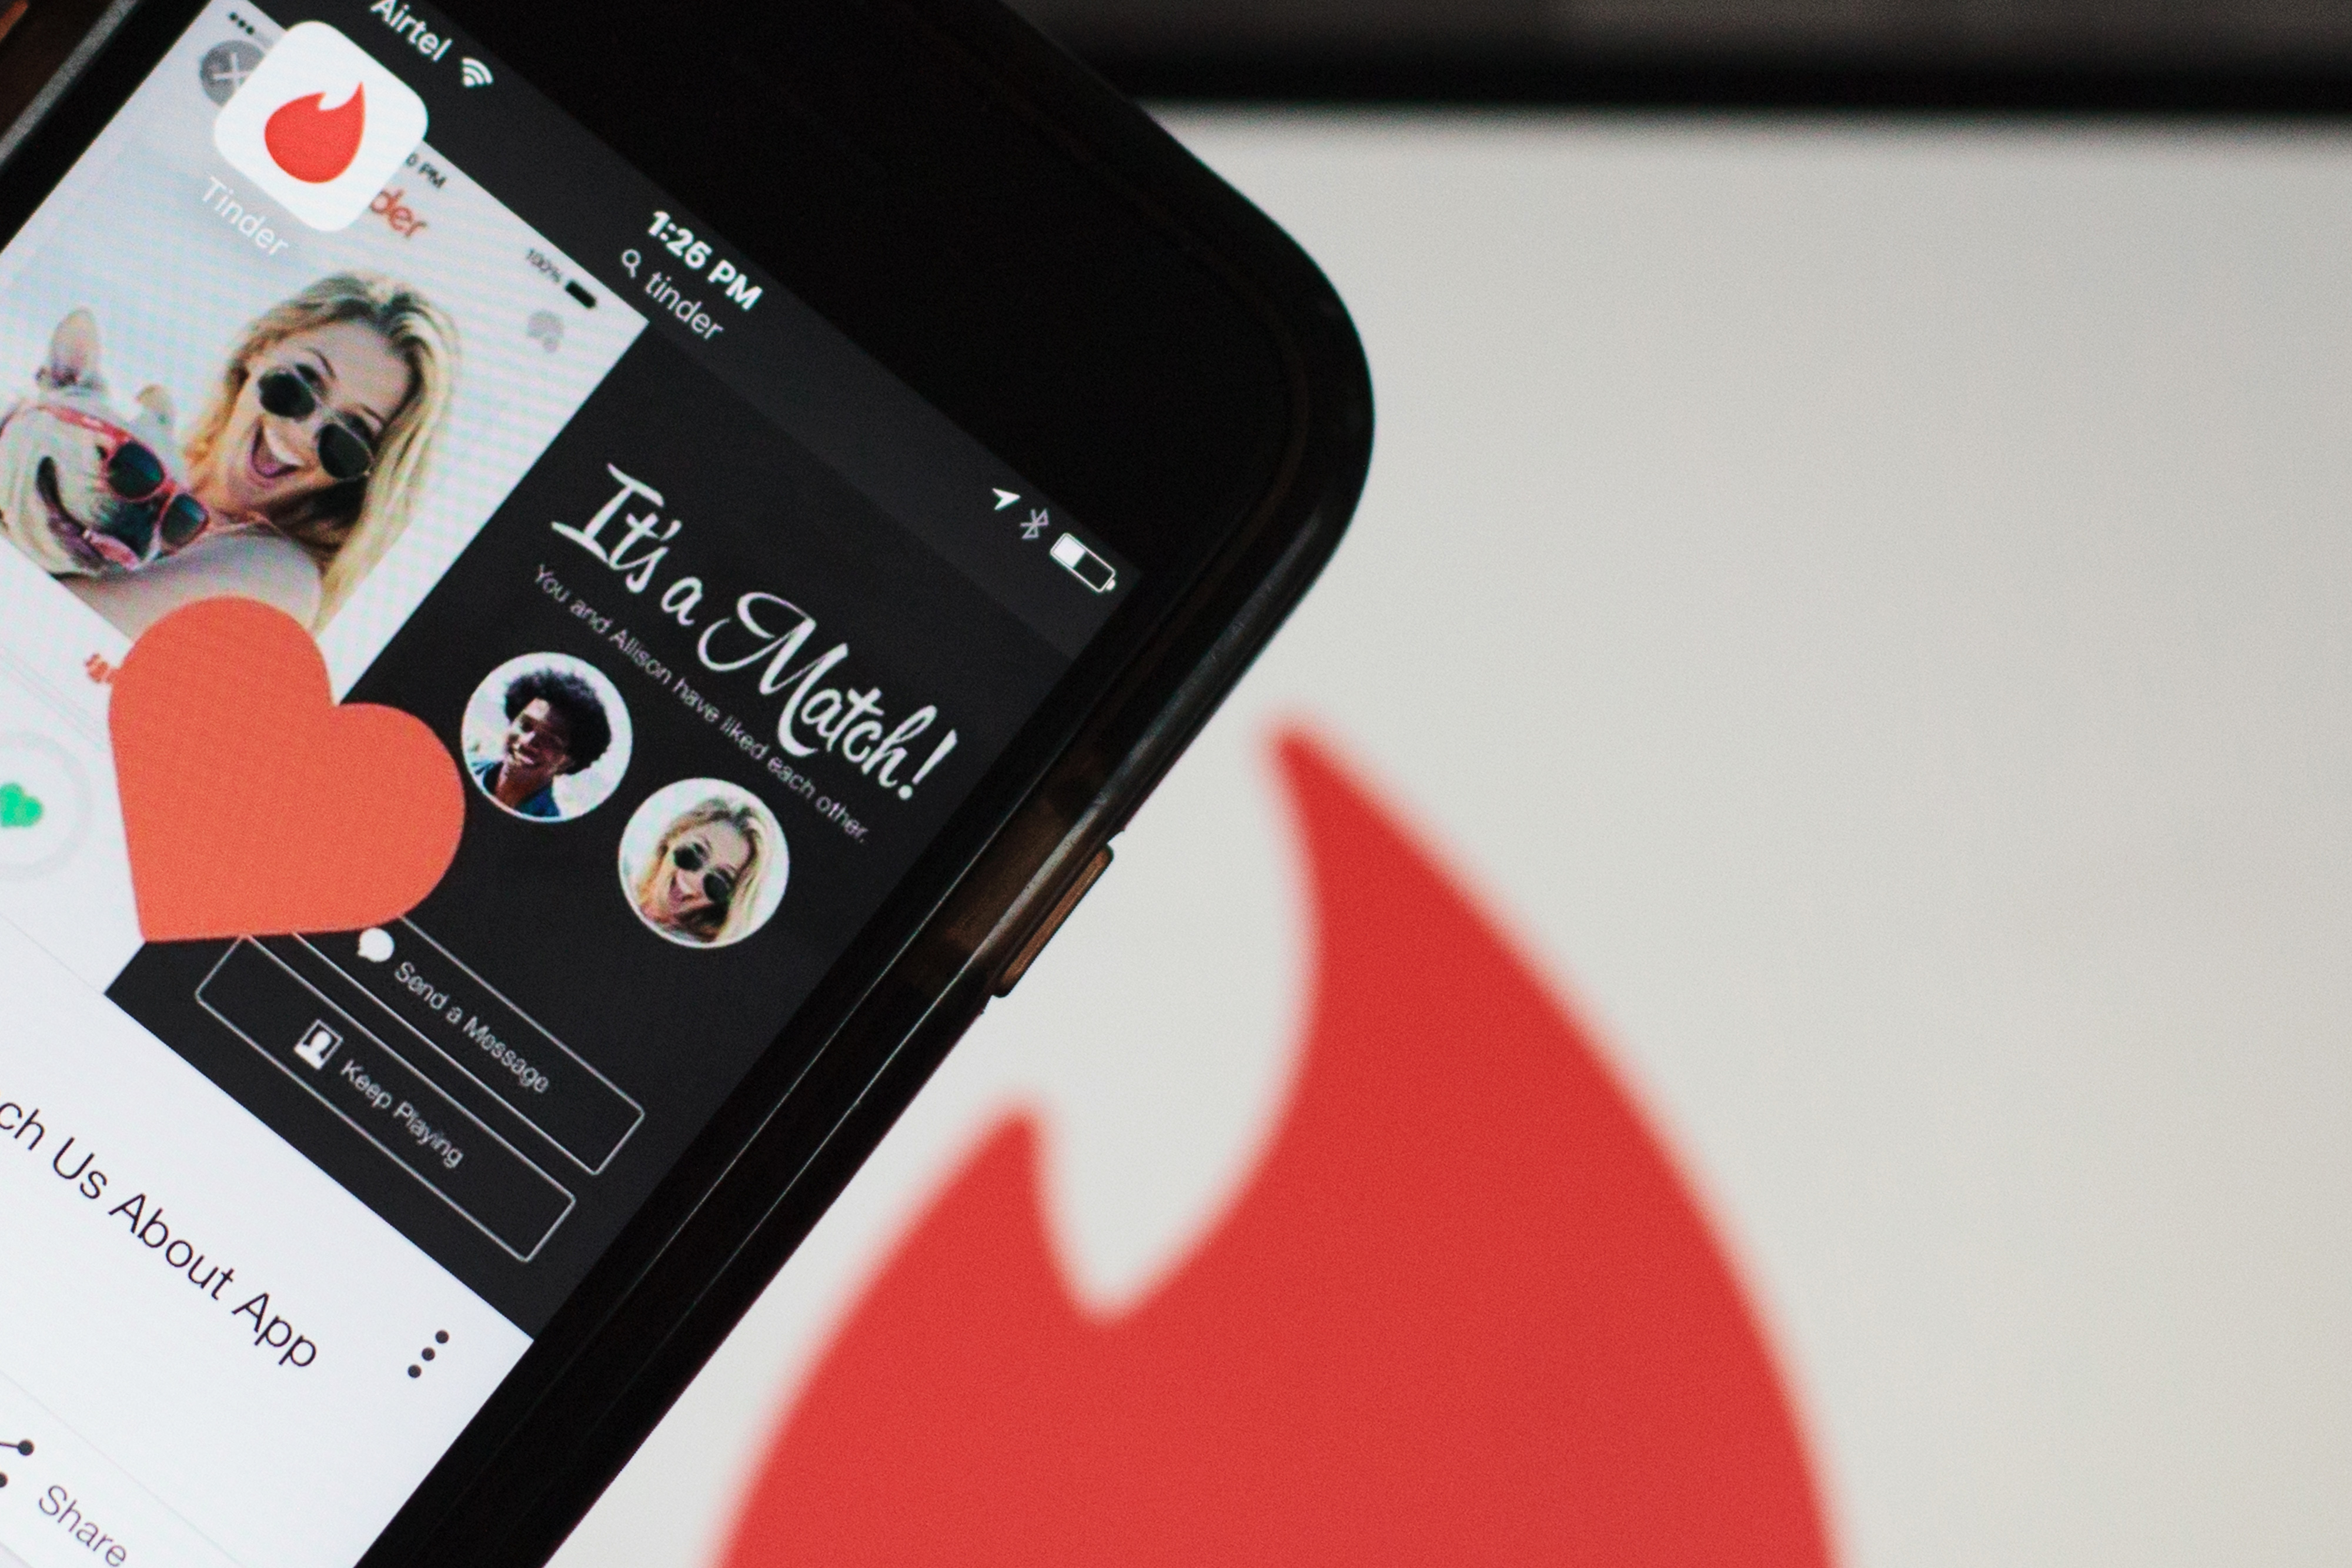 The Tinder Inc. application is displayed on a smartphone in an arranged photograph in New Delhi, India, on Friday, July 29, 2016.